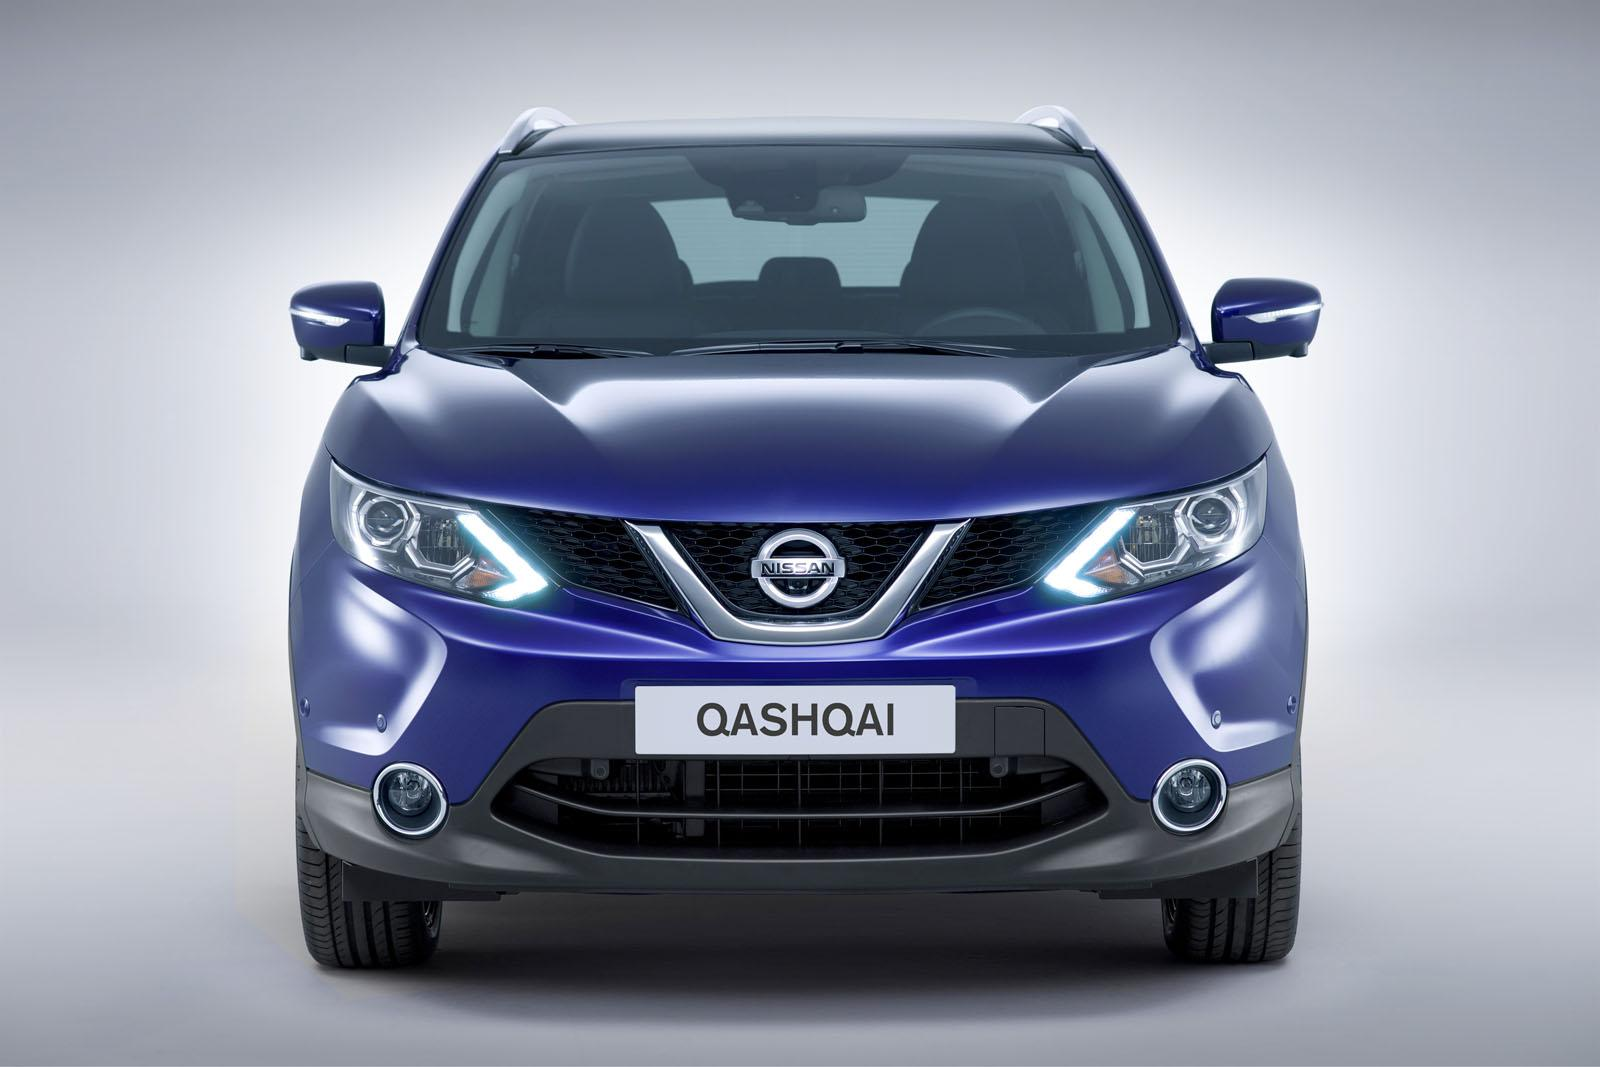 nissan cars news 2014 nissan qashqai officially unveiled. Black Bedroom Furniture Sets. Home Design Ideas